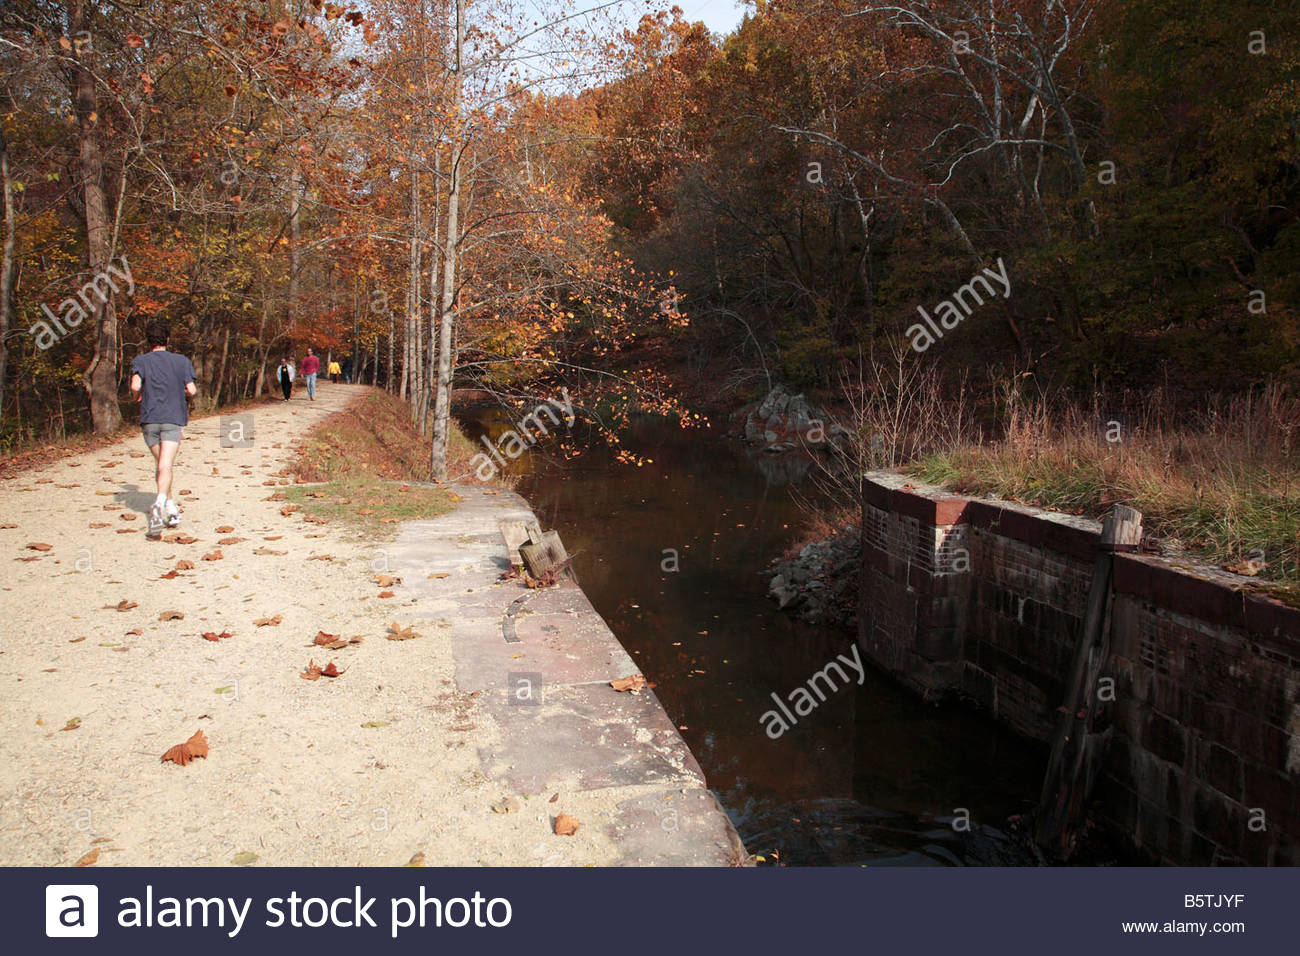 Hikers and a runner on the C&O Canal towpath near Lock 16 in Maryland. - Stock Image